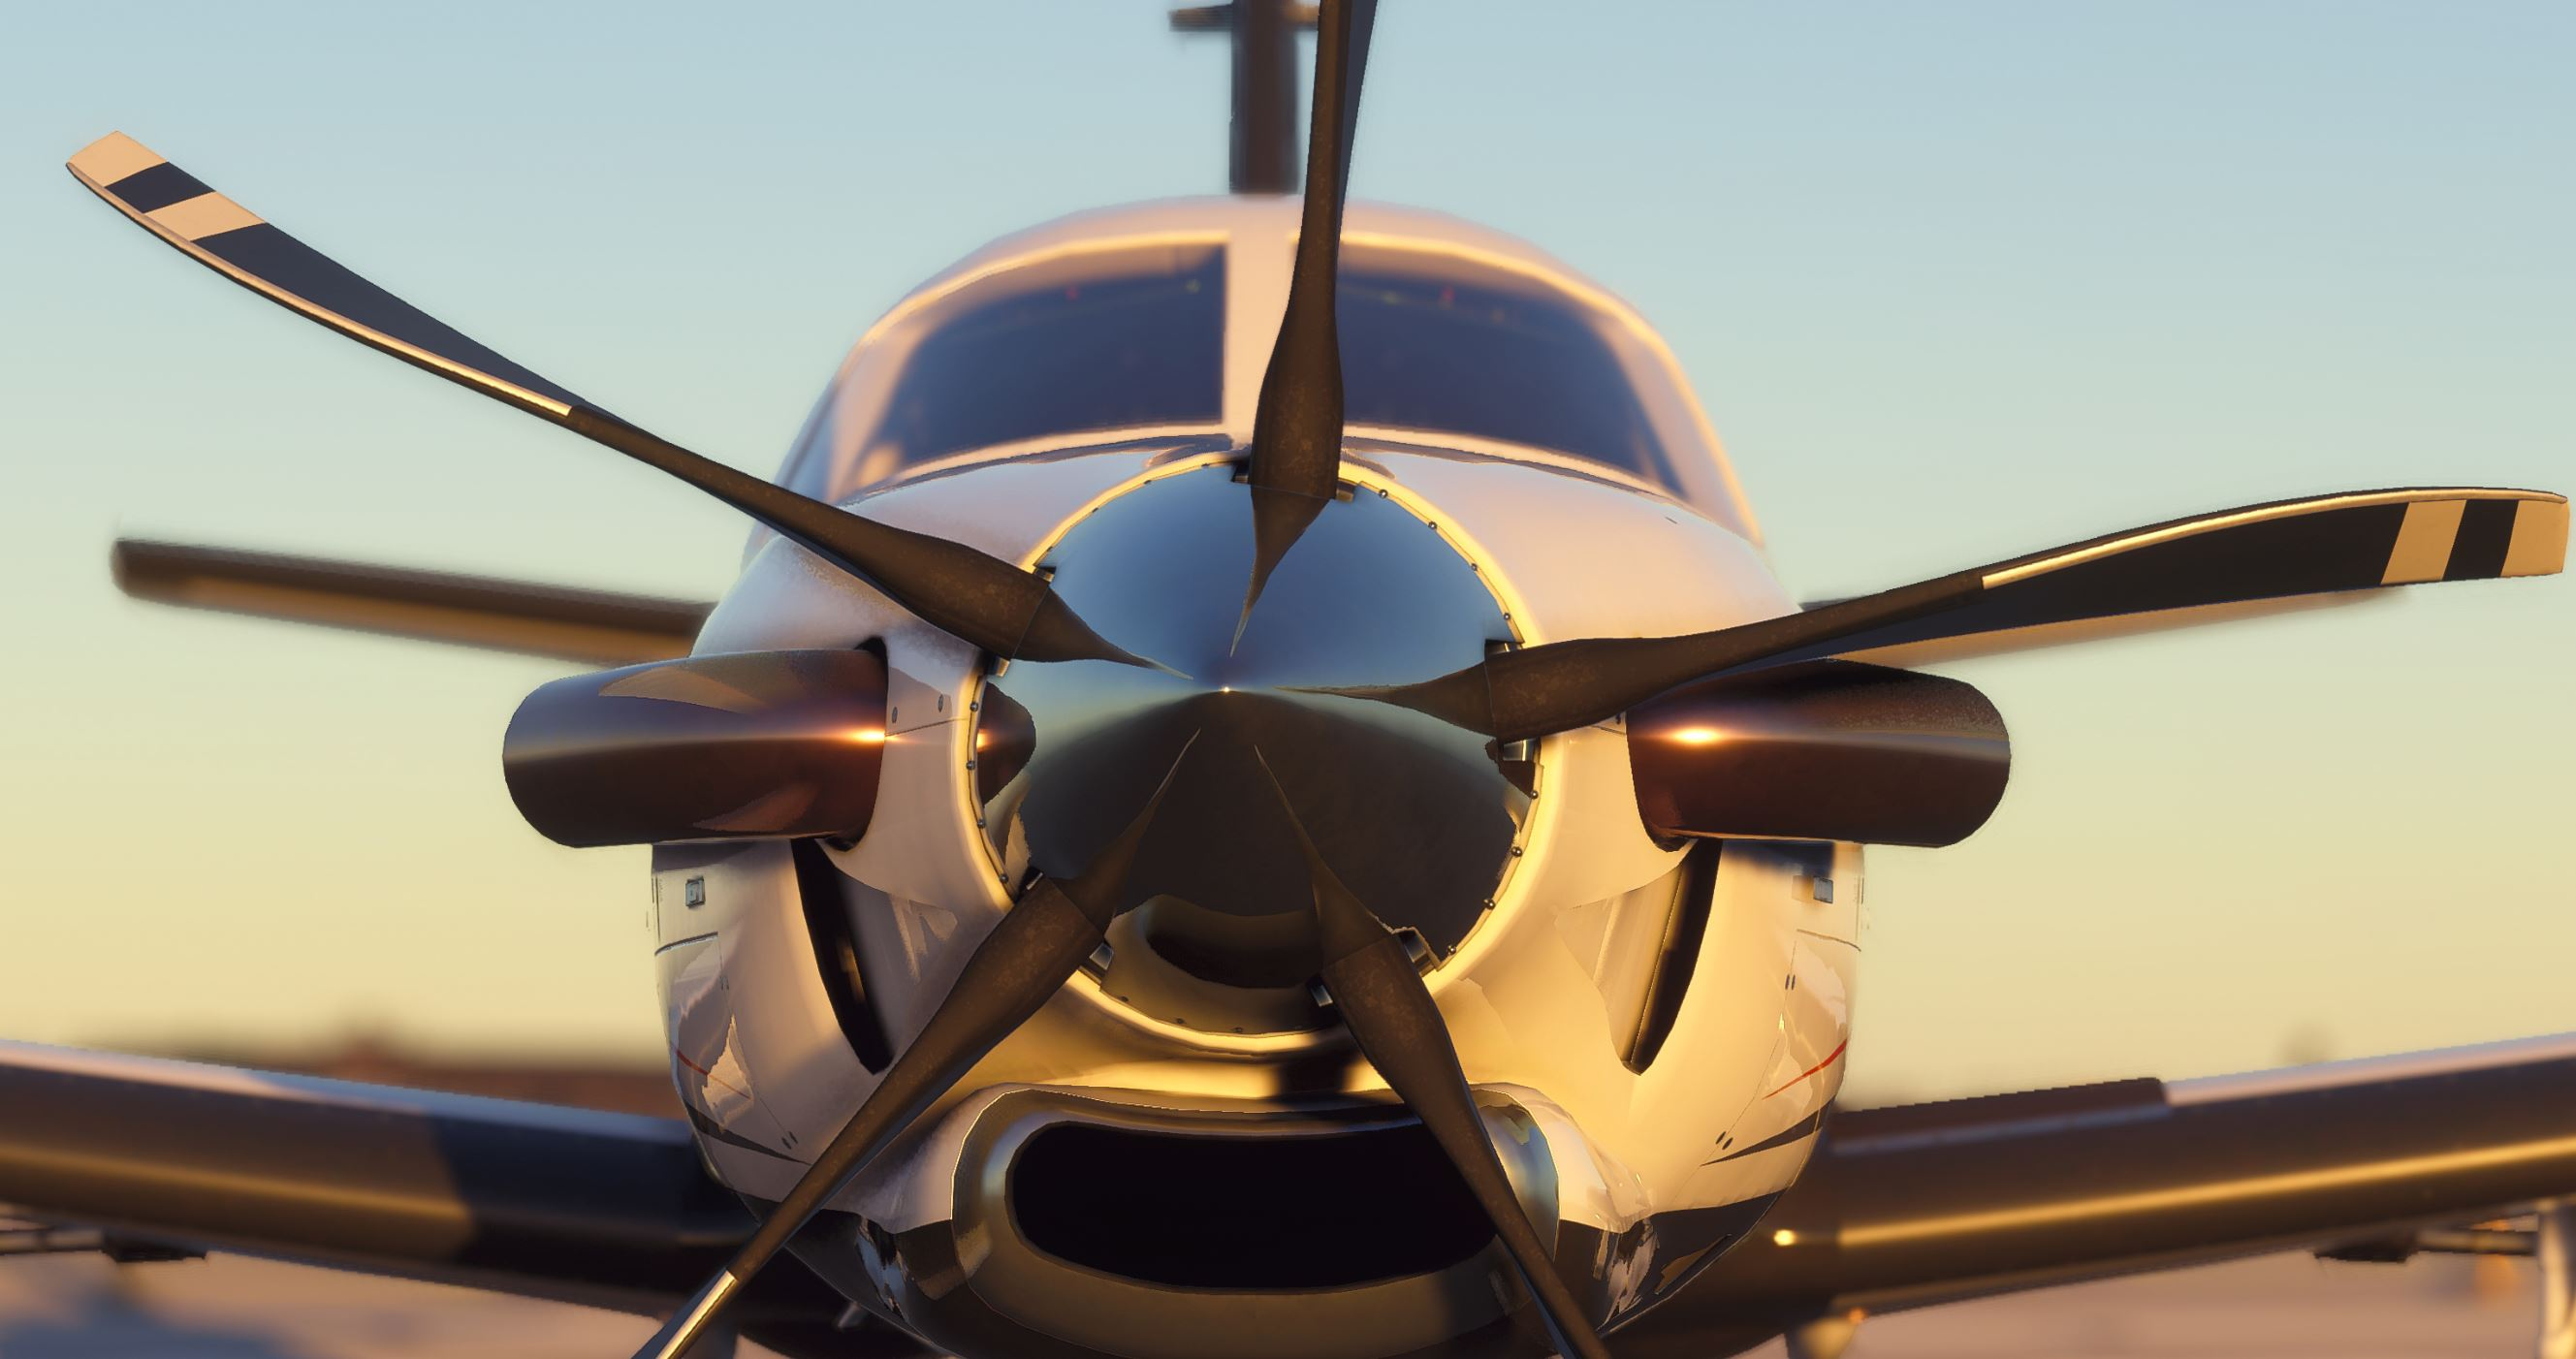 Microsoft Flight Simulator Insider Program is here, sign-up now for